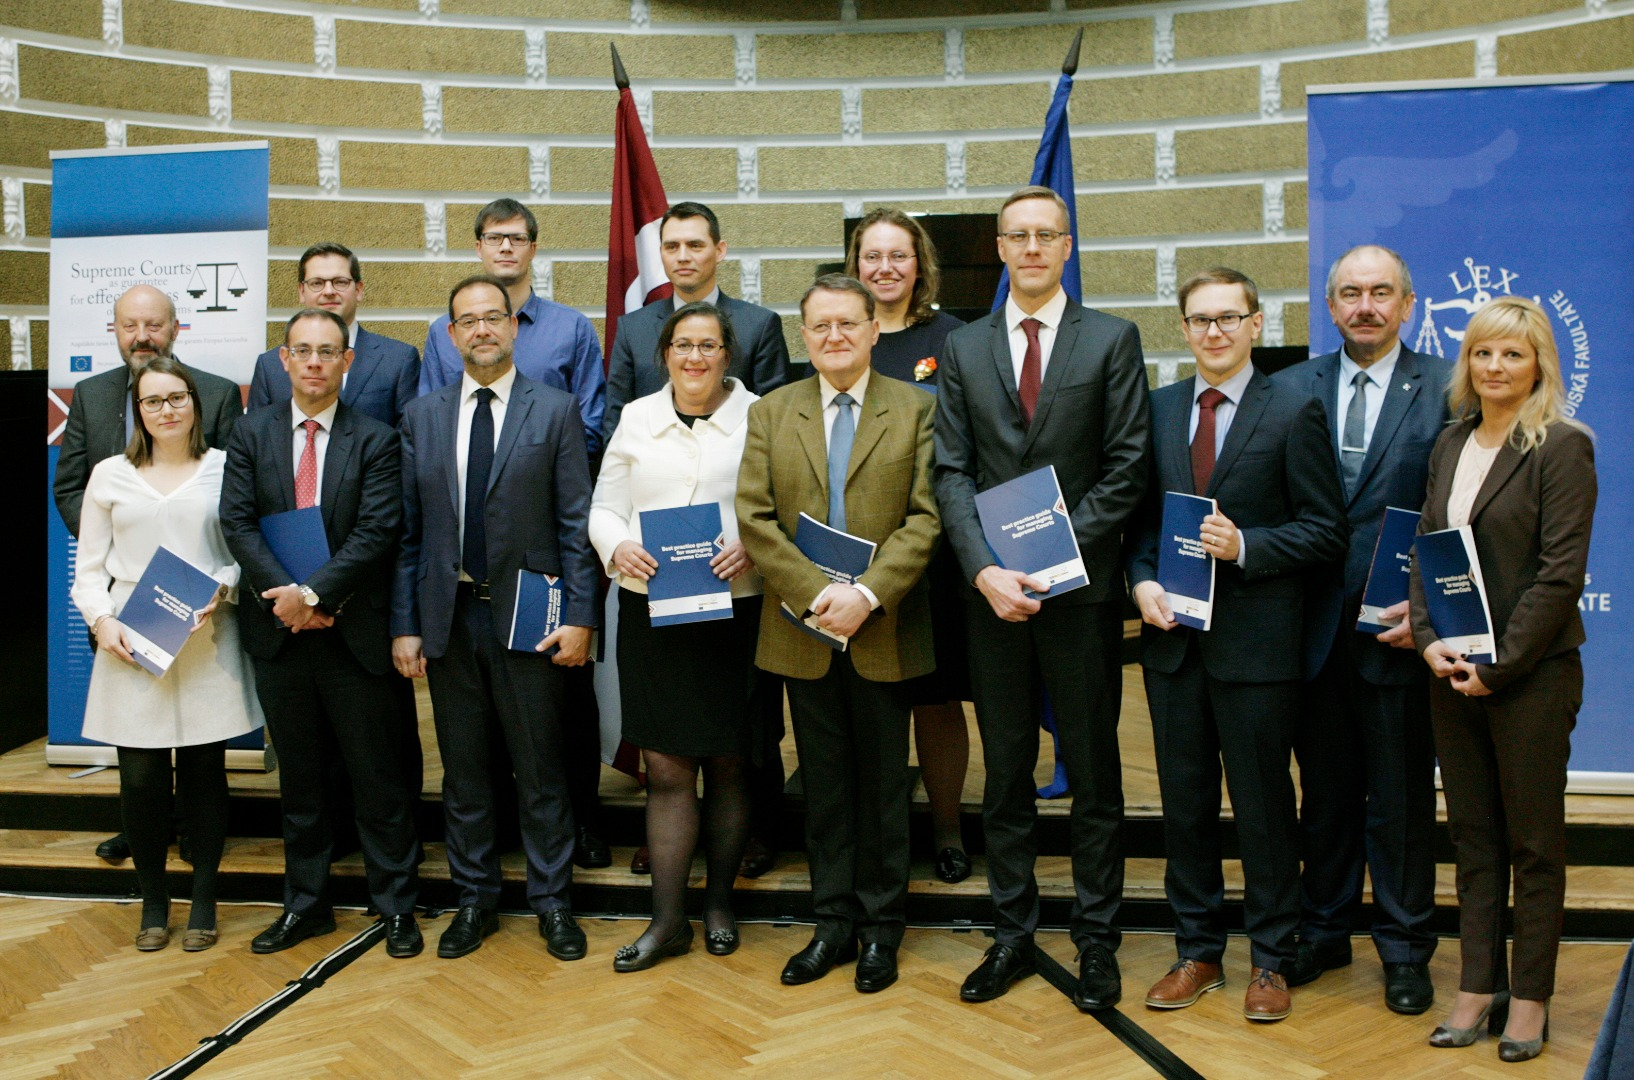 21.04.2017. Opening of a handbook in managing the work of the Supreme Courts